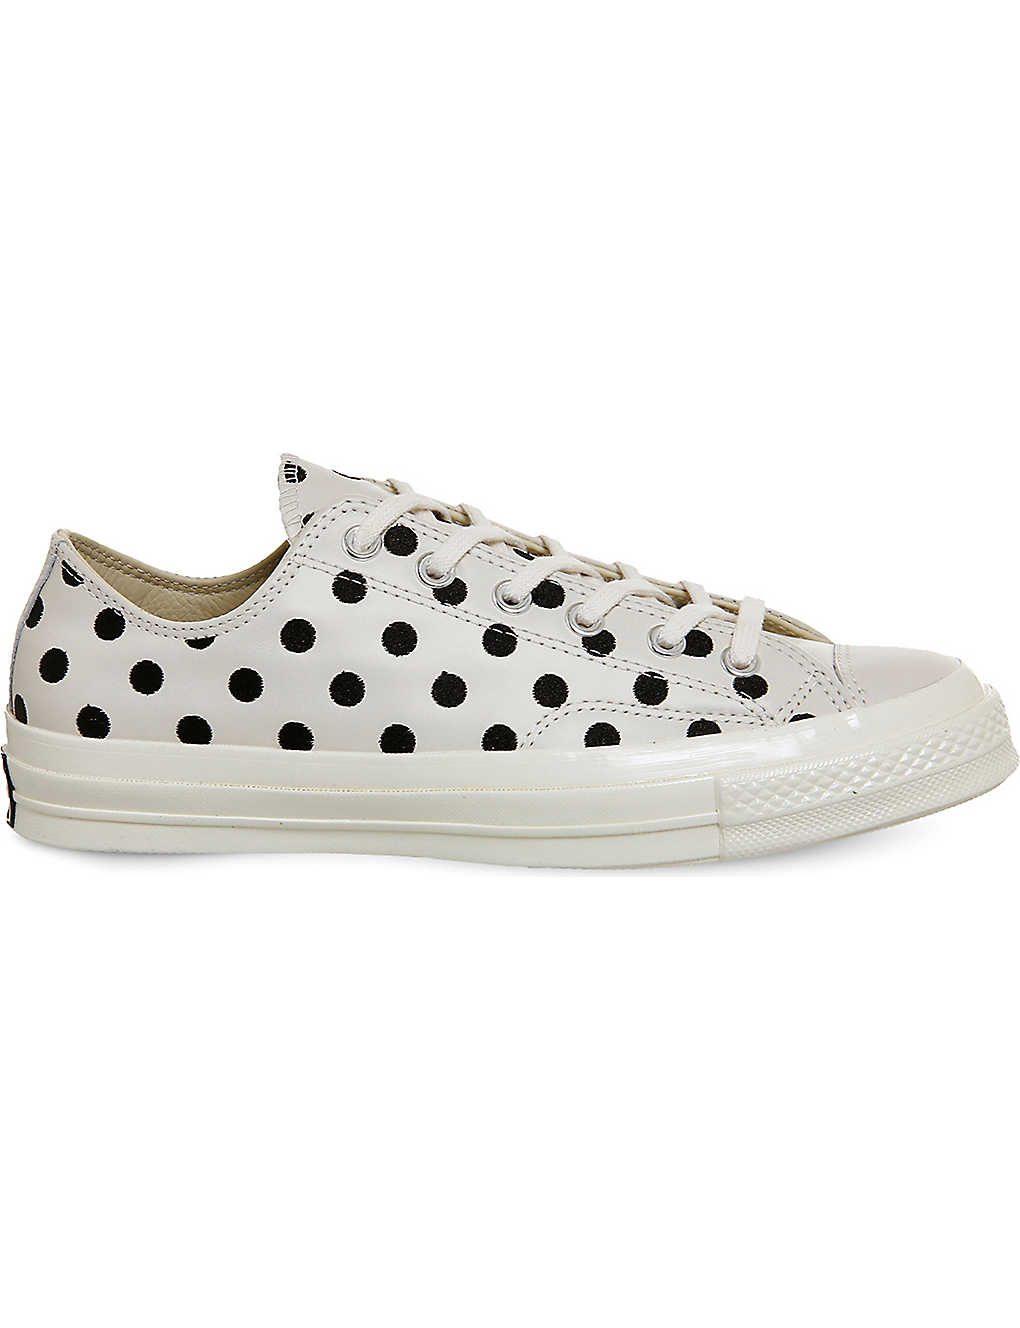 b2e9ac795fa380 CONVERSE - All star ox 70s leather low-tops